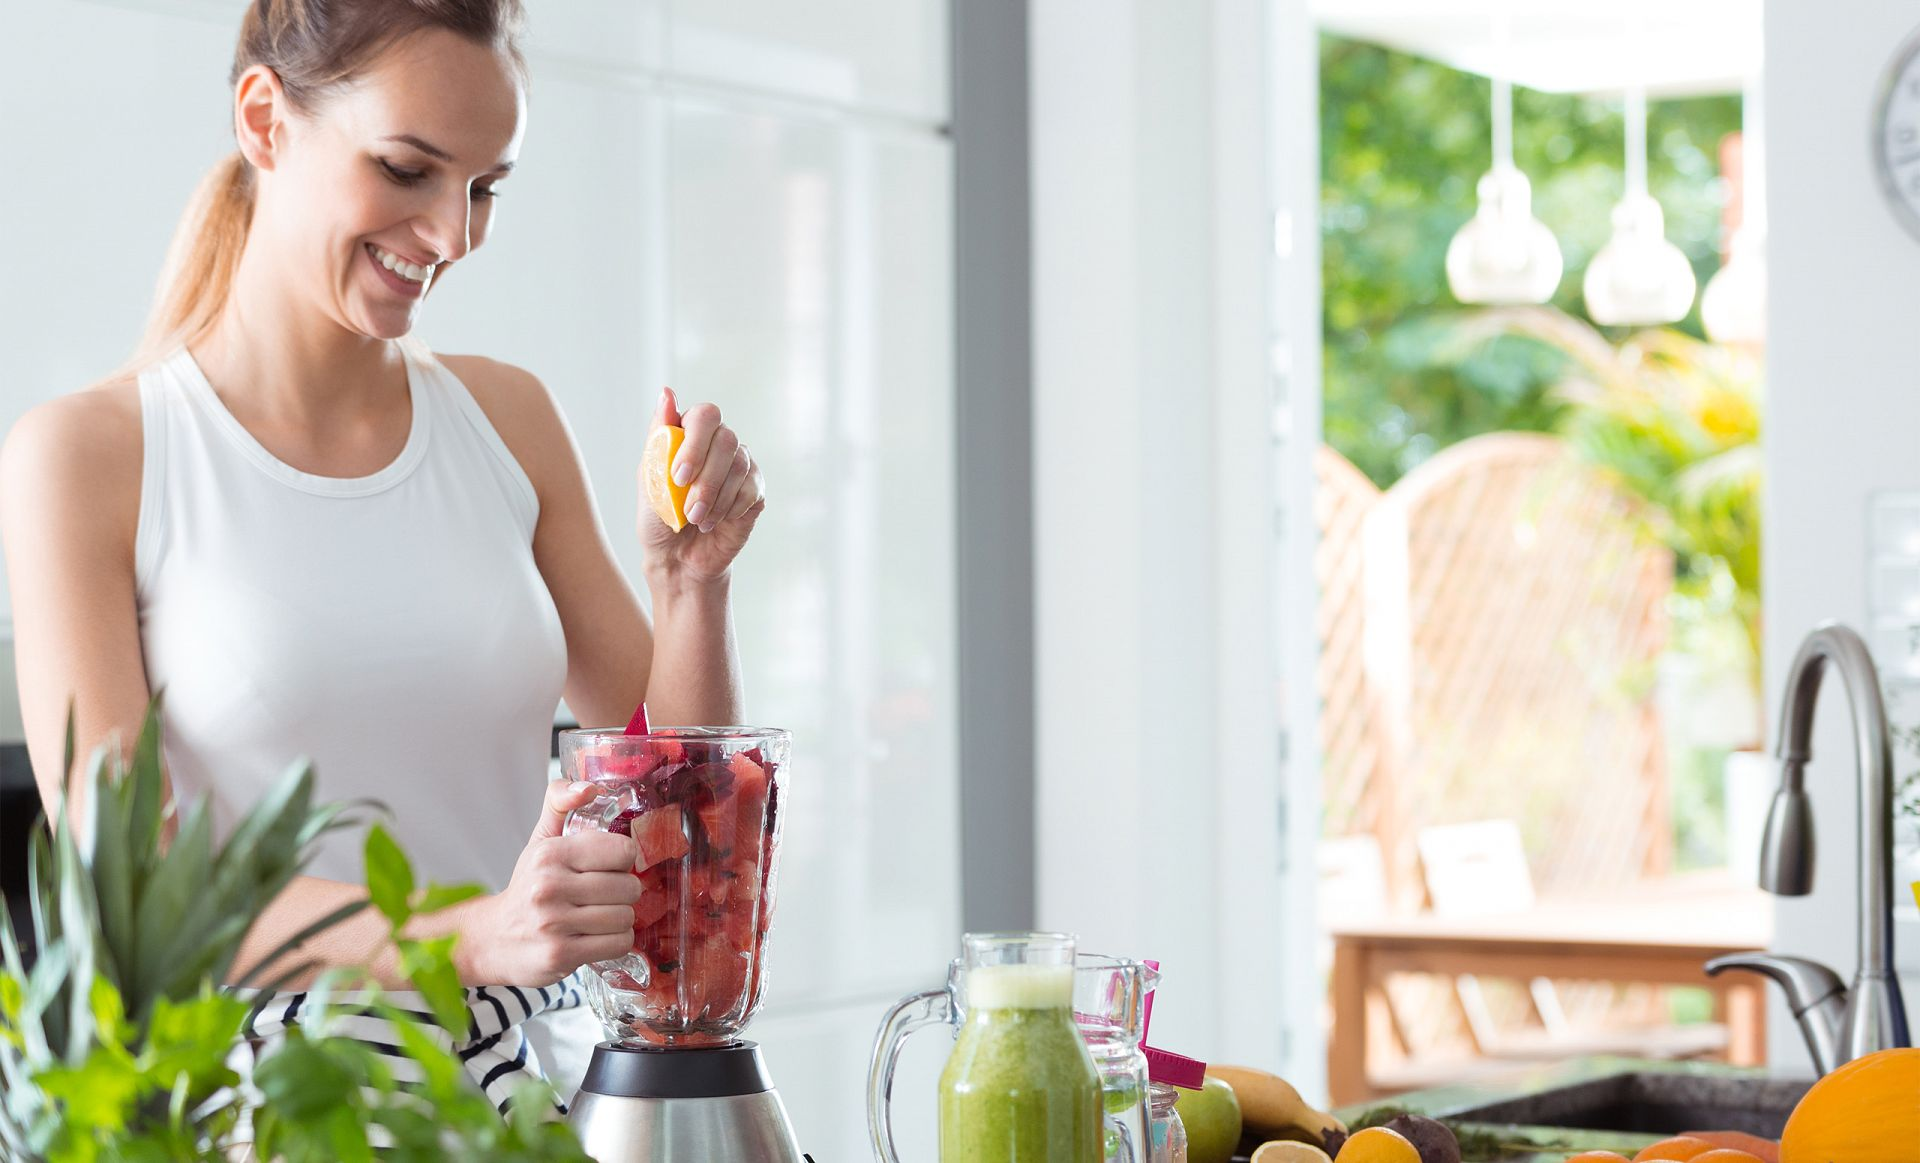 active slim image of woman making a smoothie